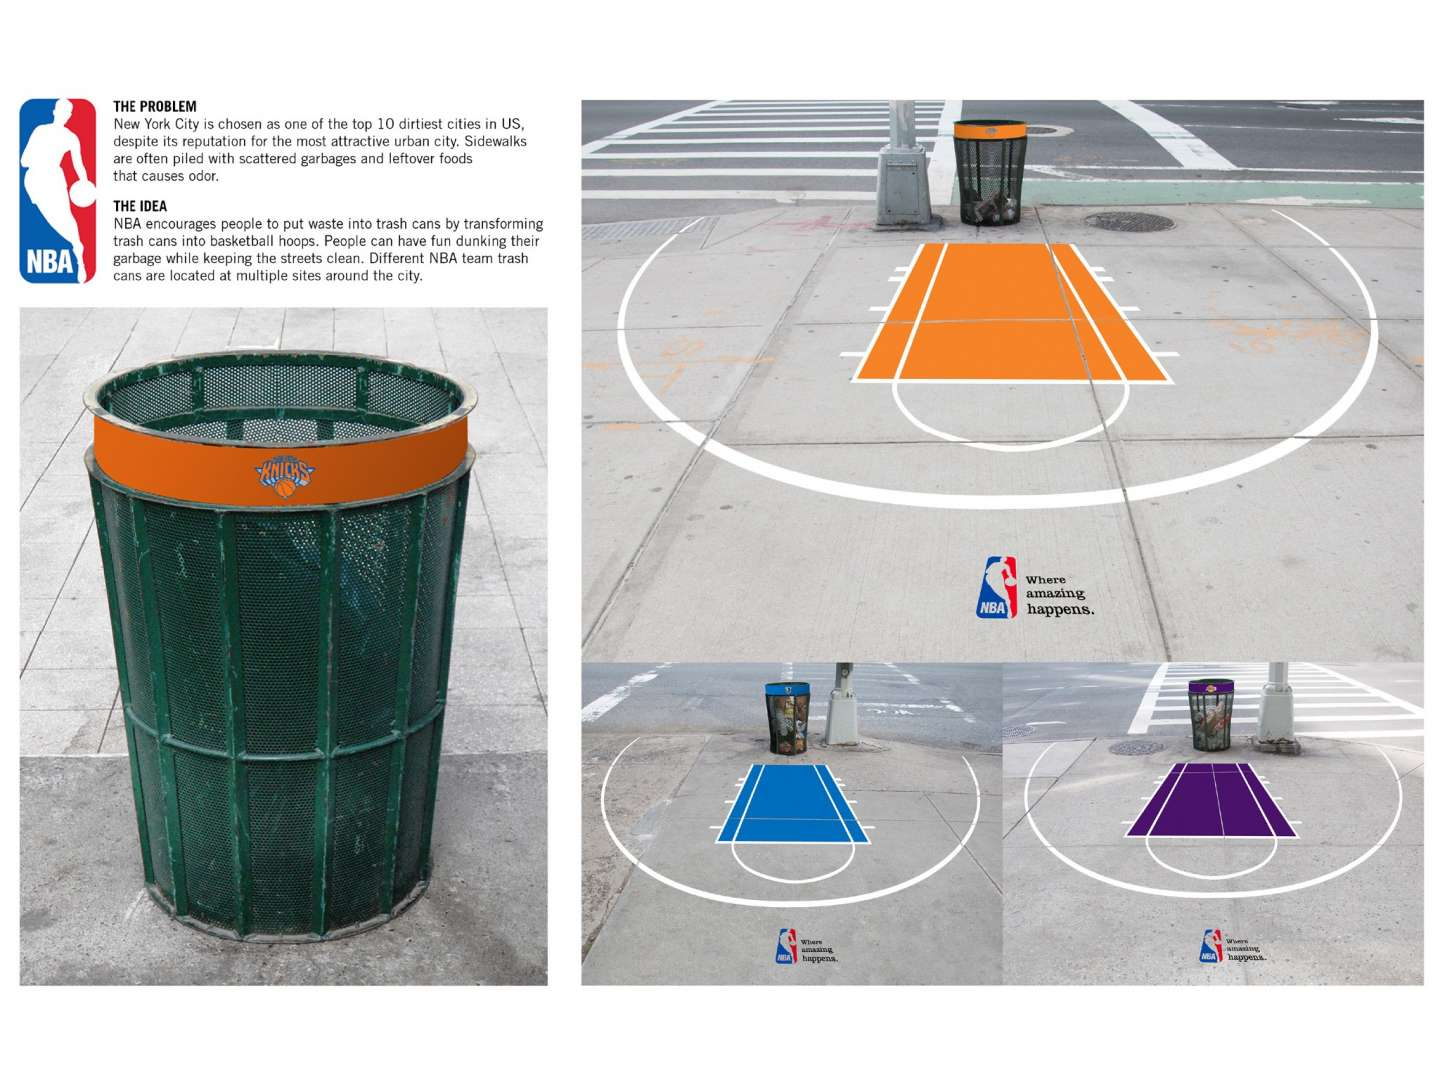 Fun Trash Can Nba Trash Can Ad By Yoon Ha Chung Sva Design